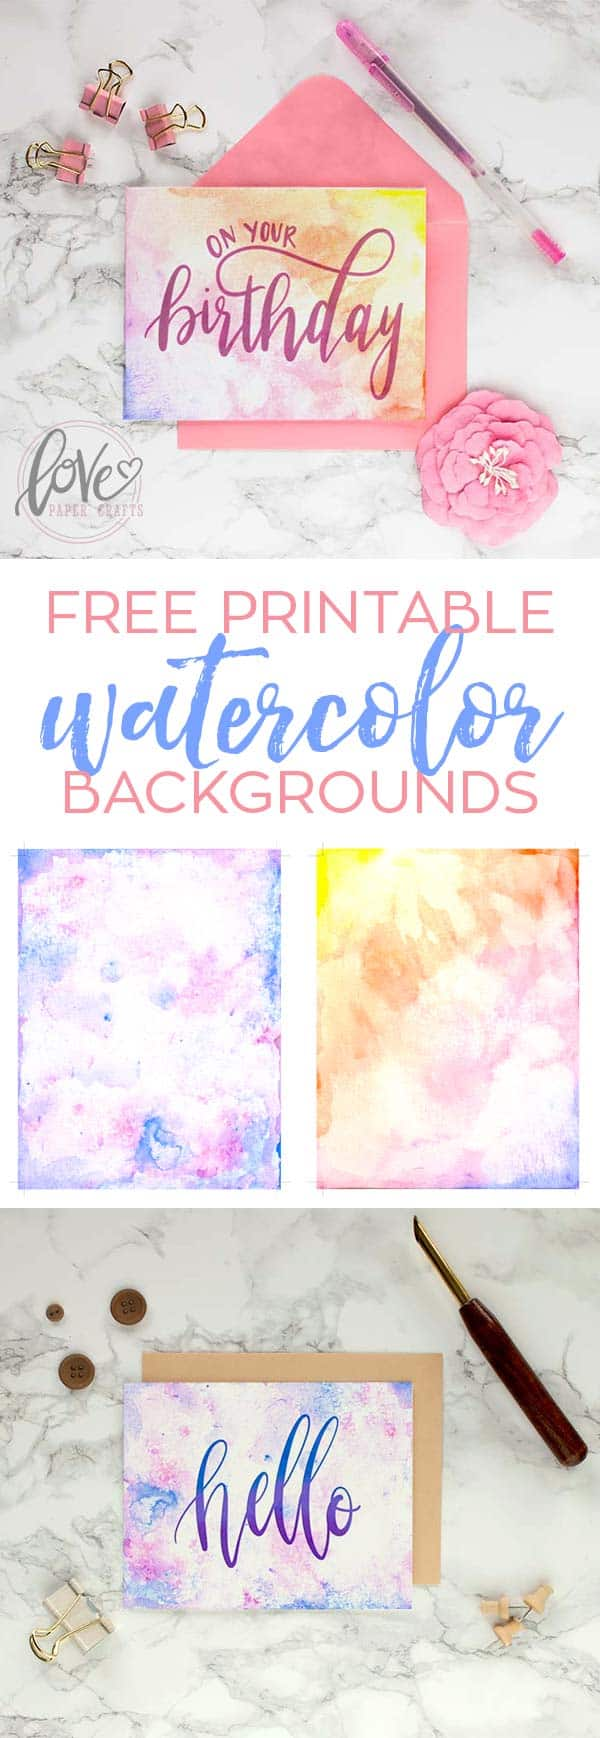 graphic relating to Printable Textures called Printable Watercolor Card Backgrounds - Appreciate Paper Crafts